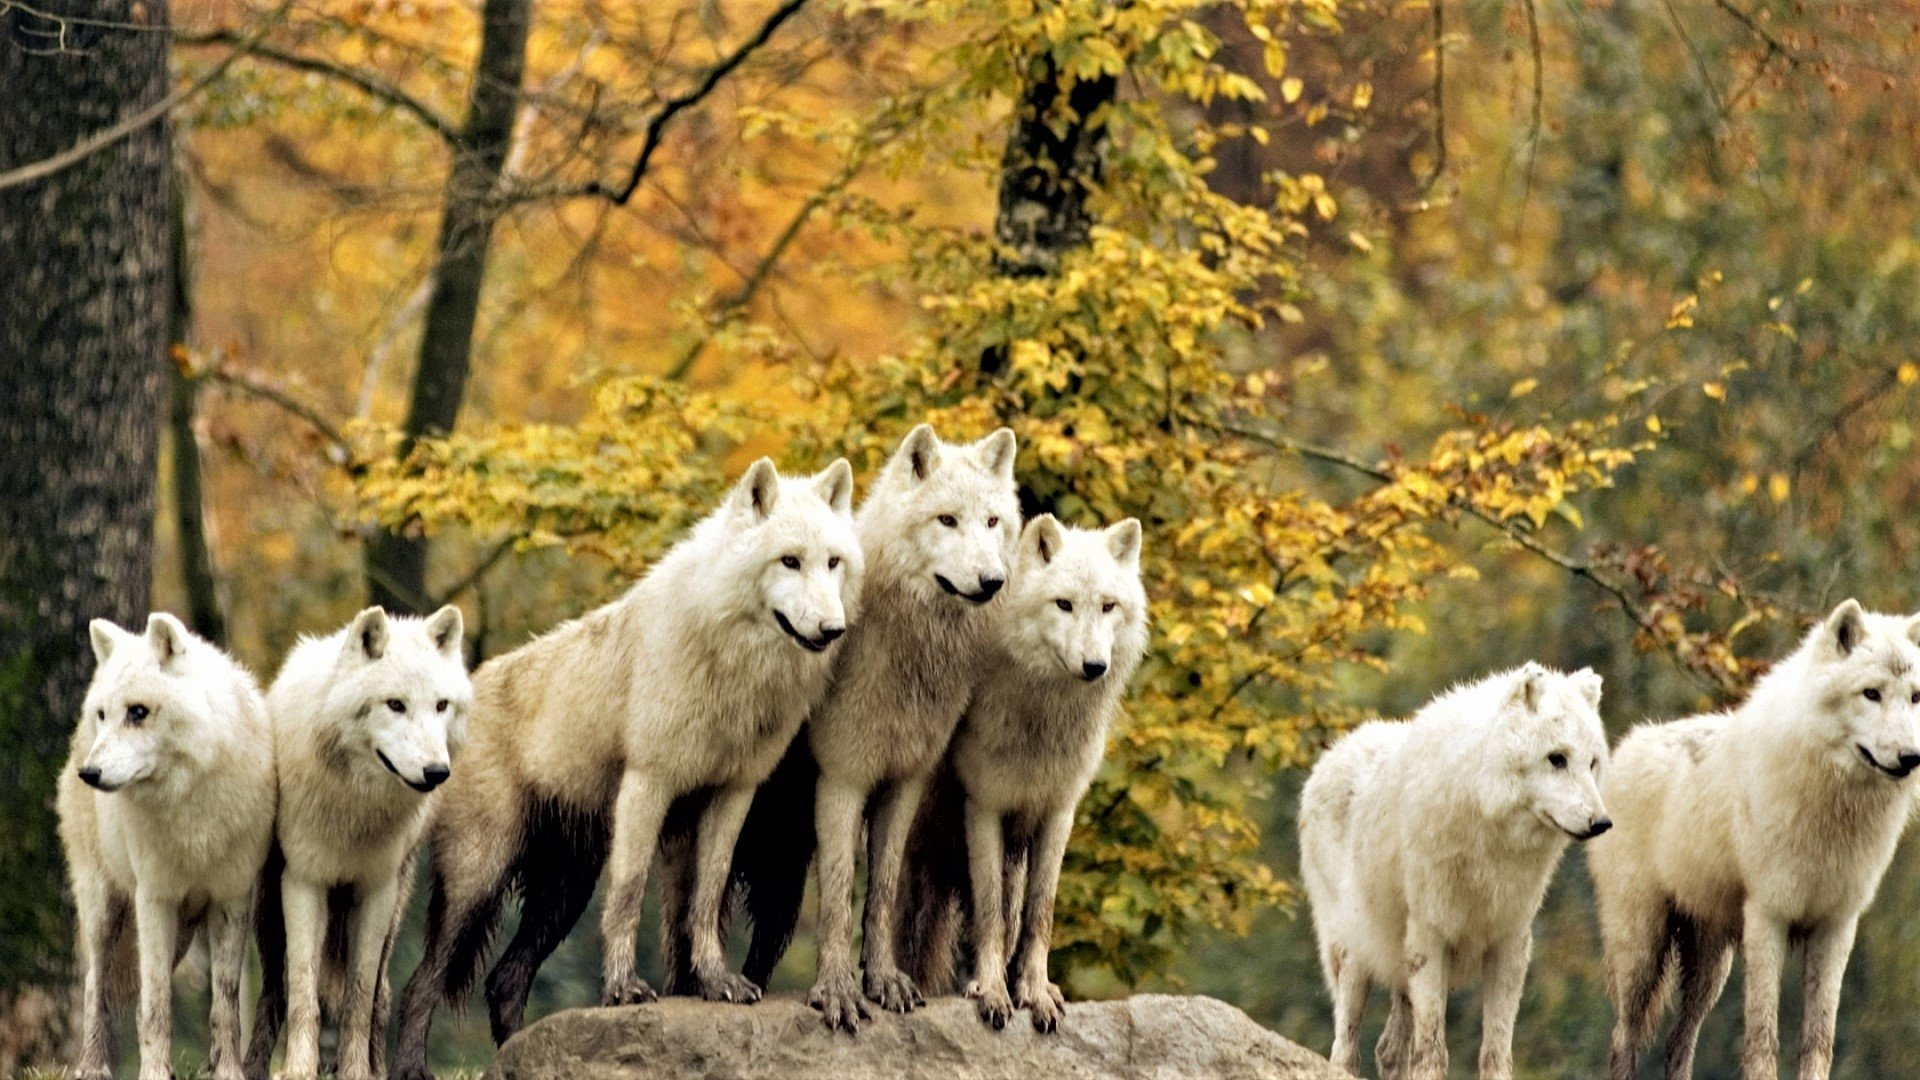 White Wolves in Autumn Forest